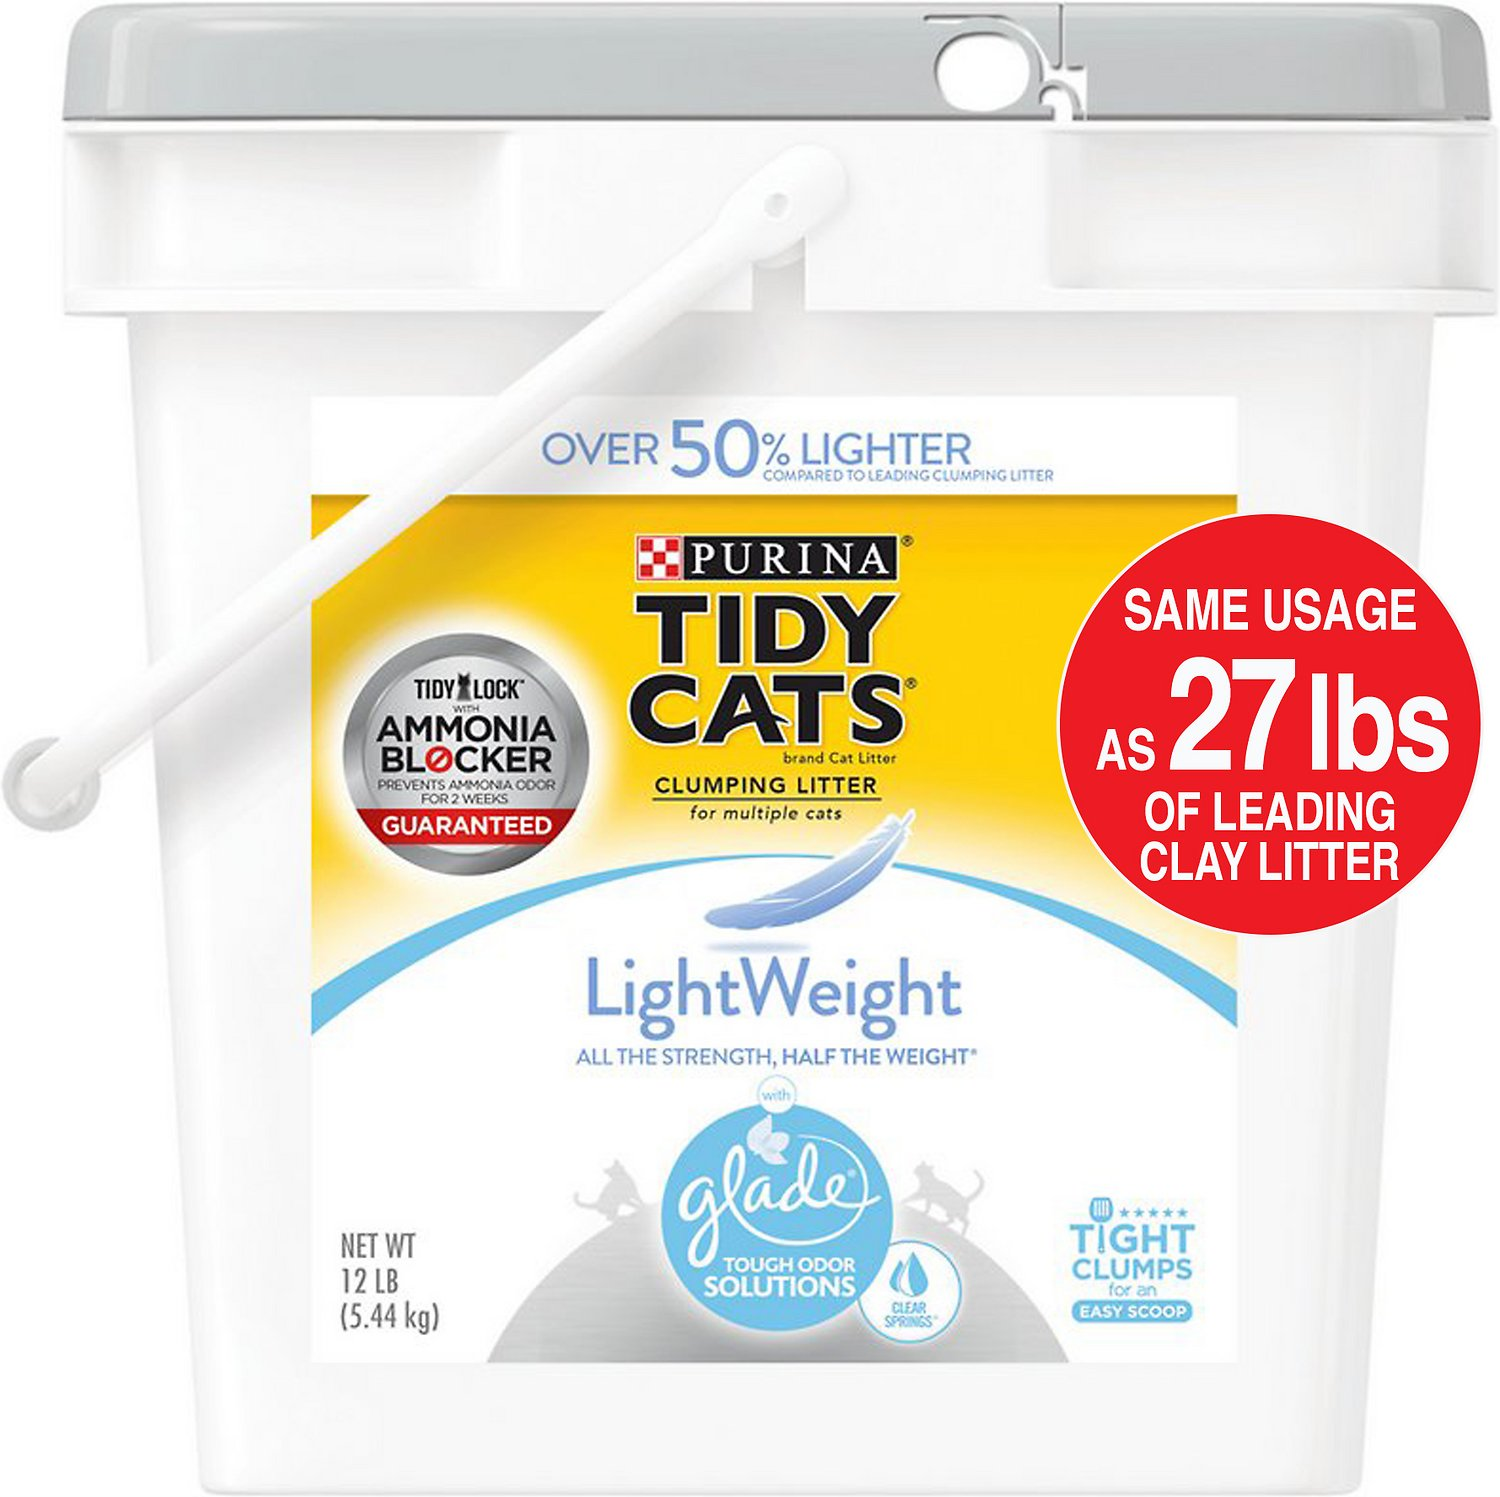 Tidy Cats LightWeight Glade Tough Odor Solutions Clear